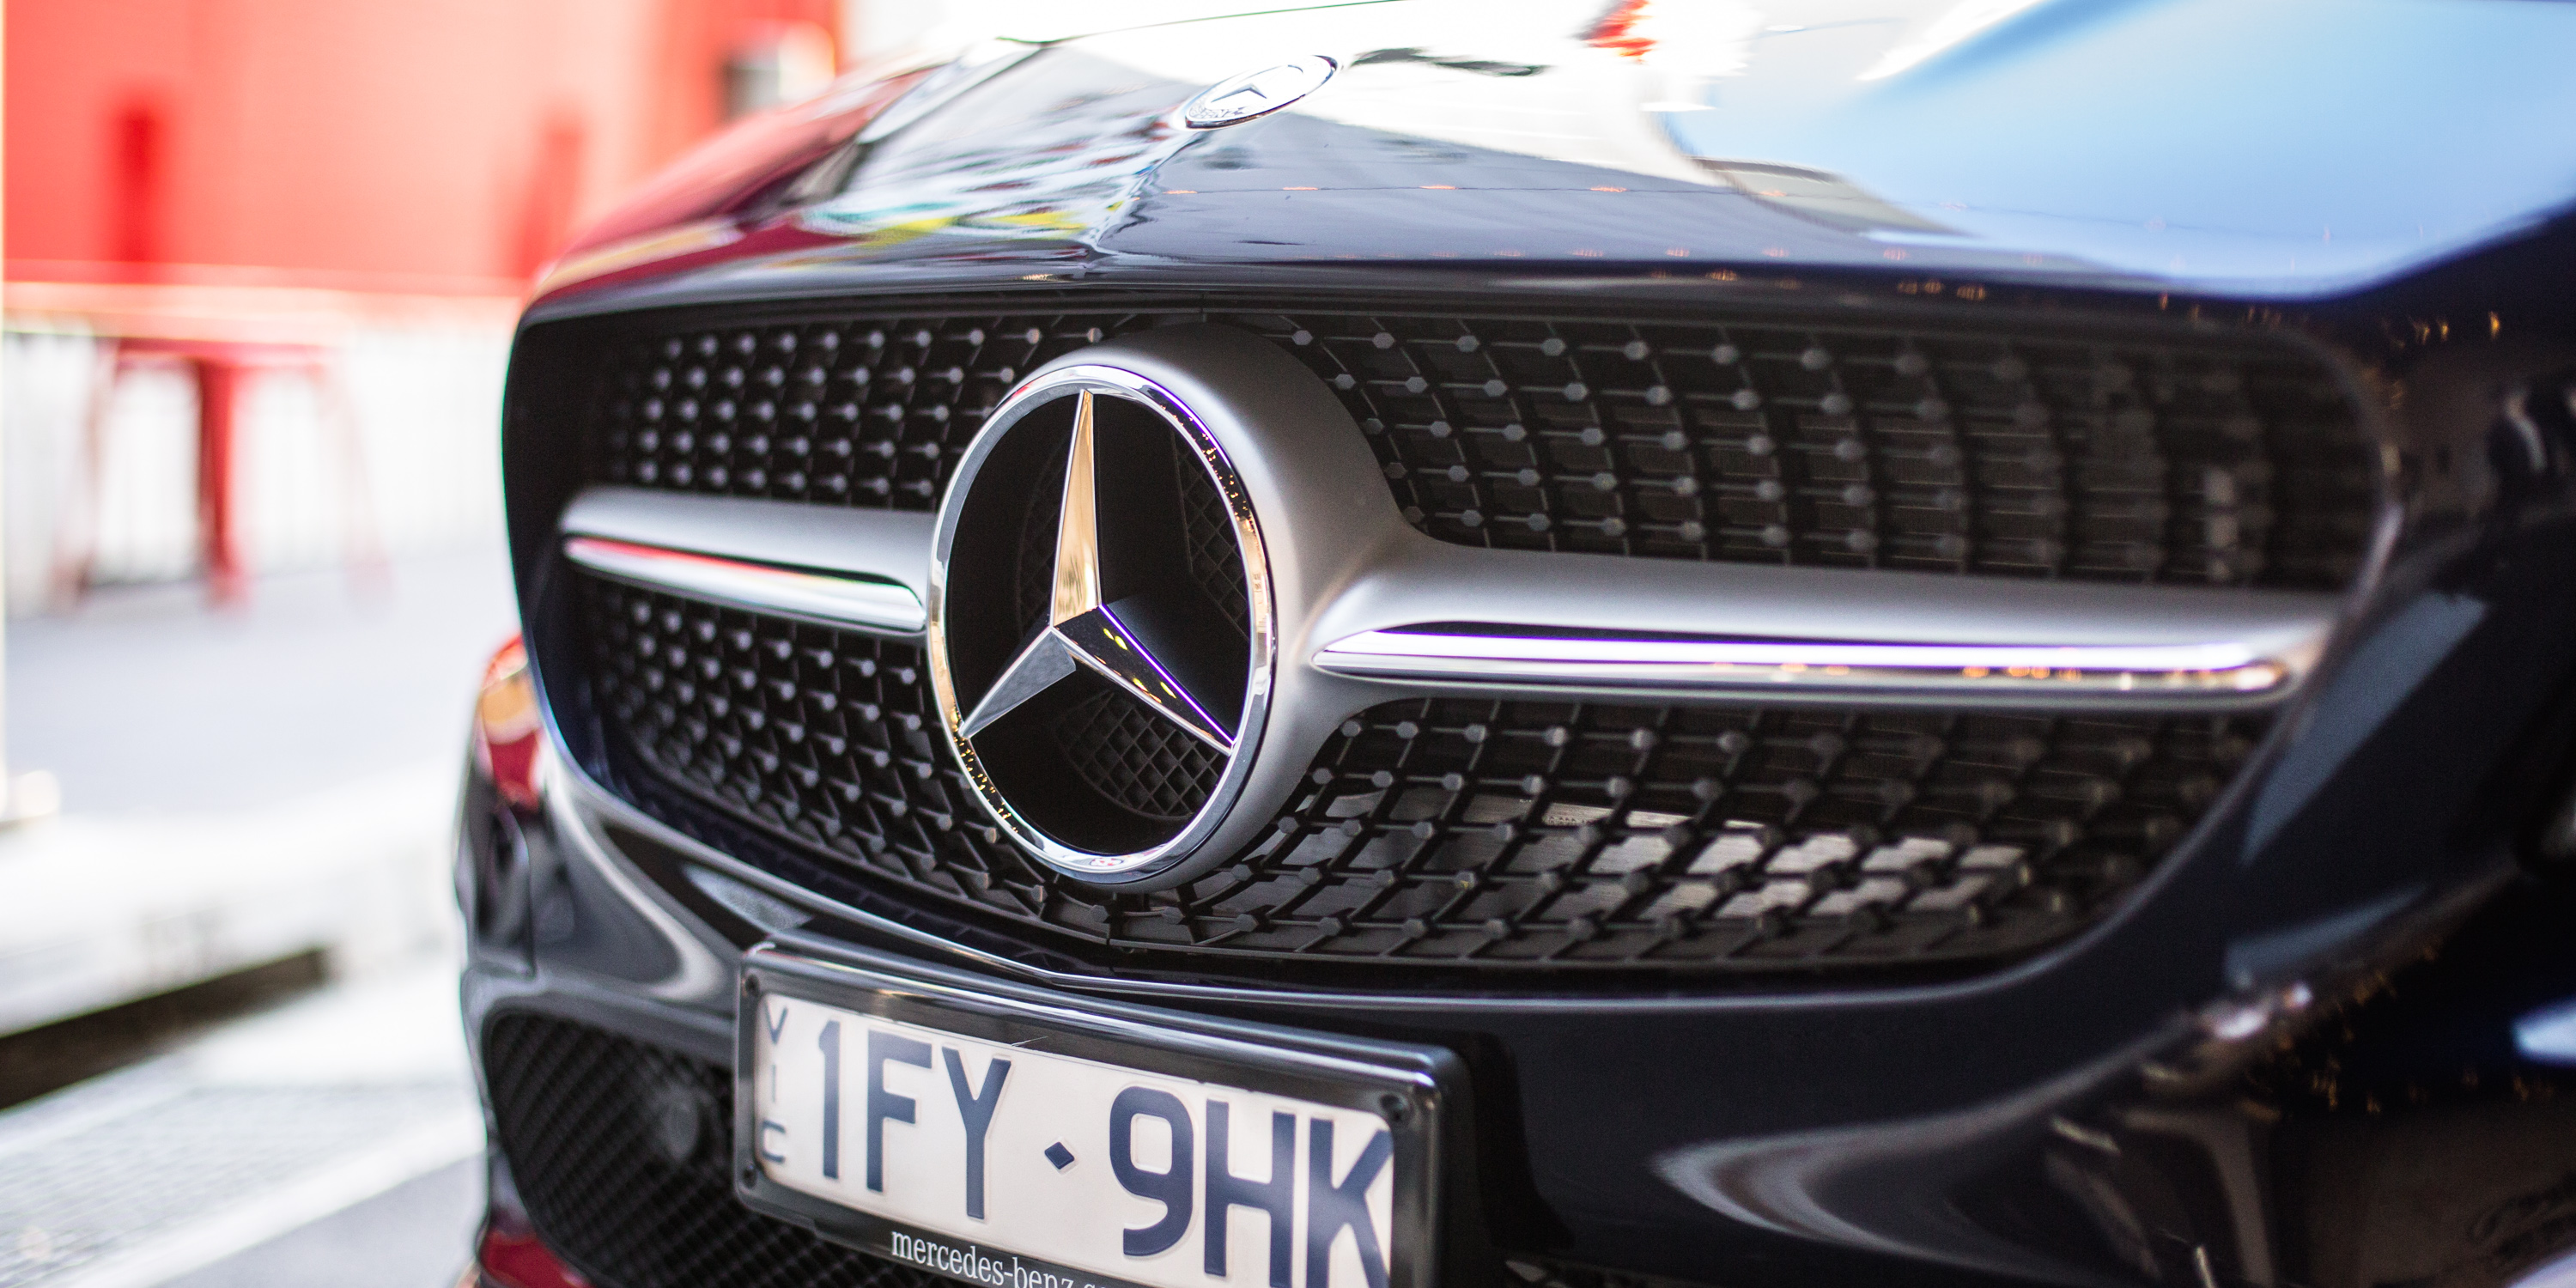 Mercedes-Benz CLA photo 173282